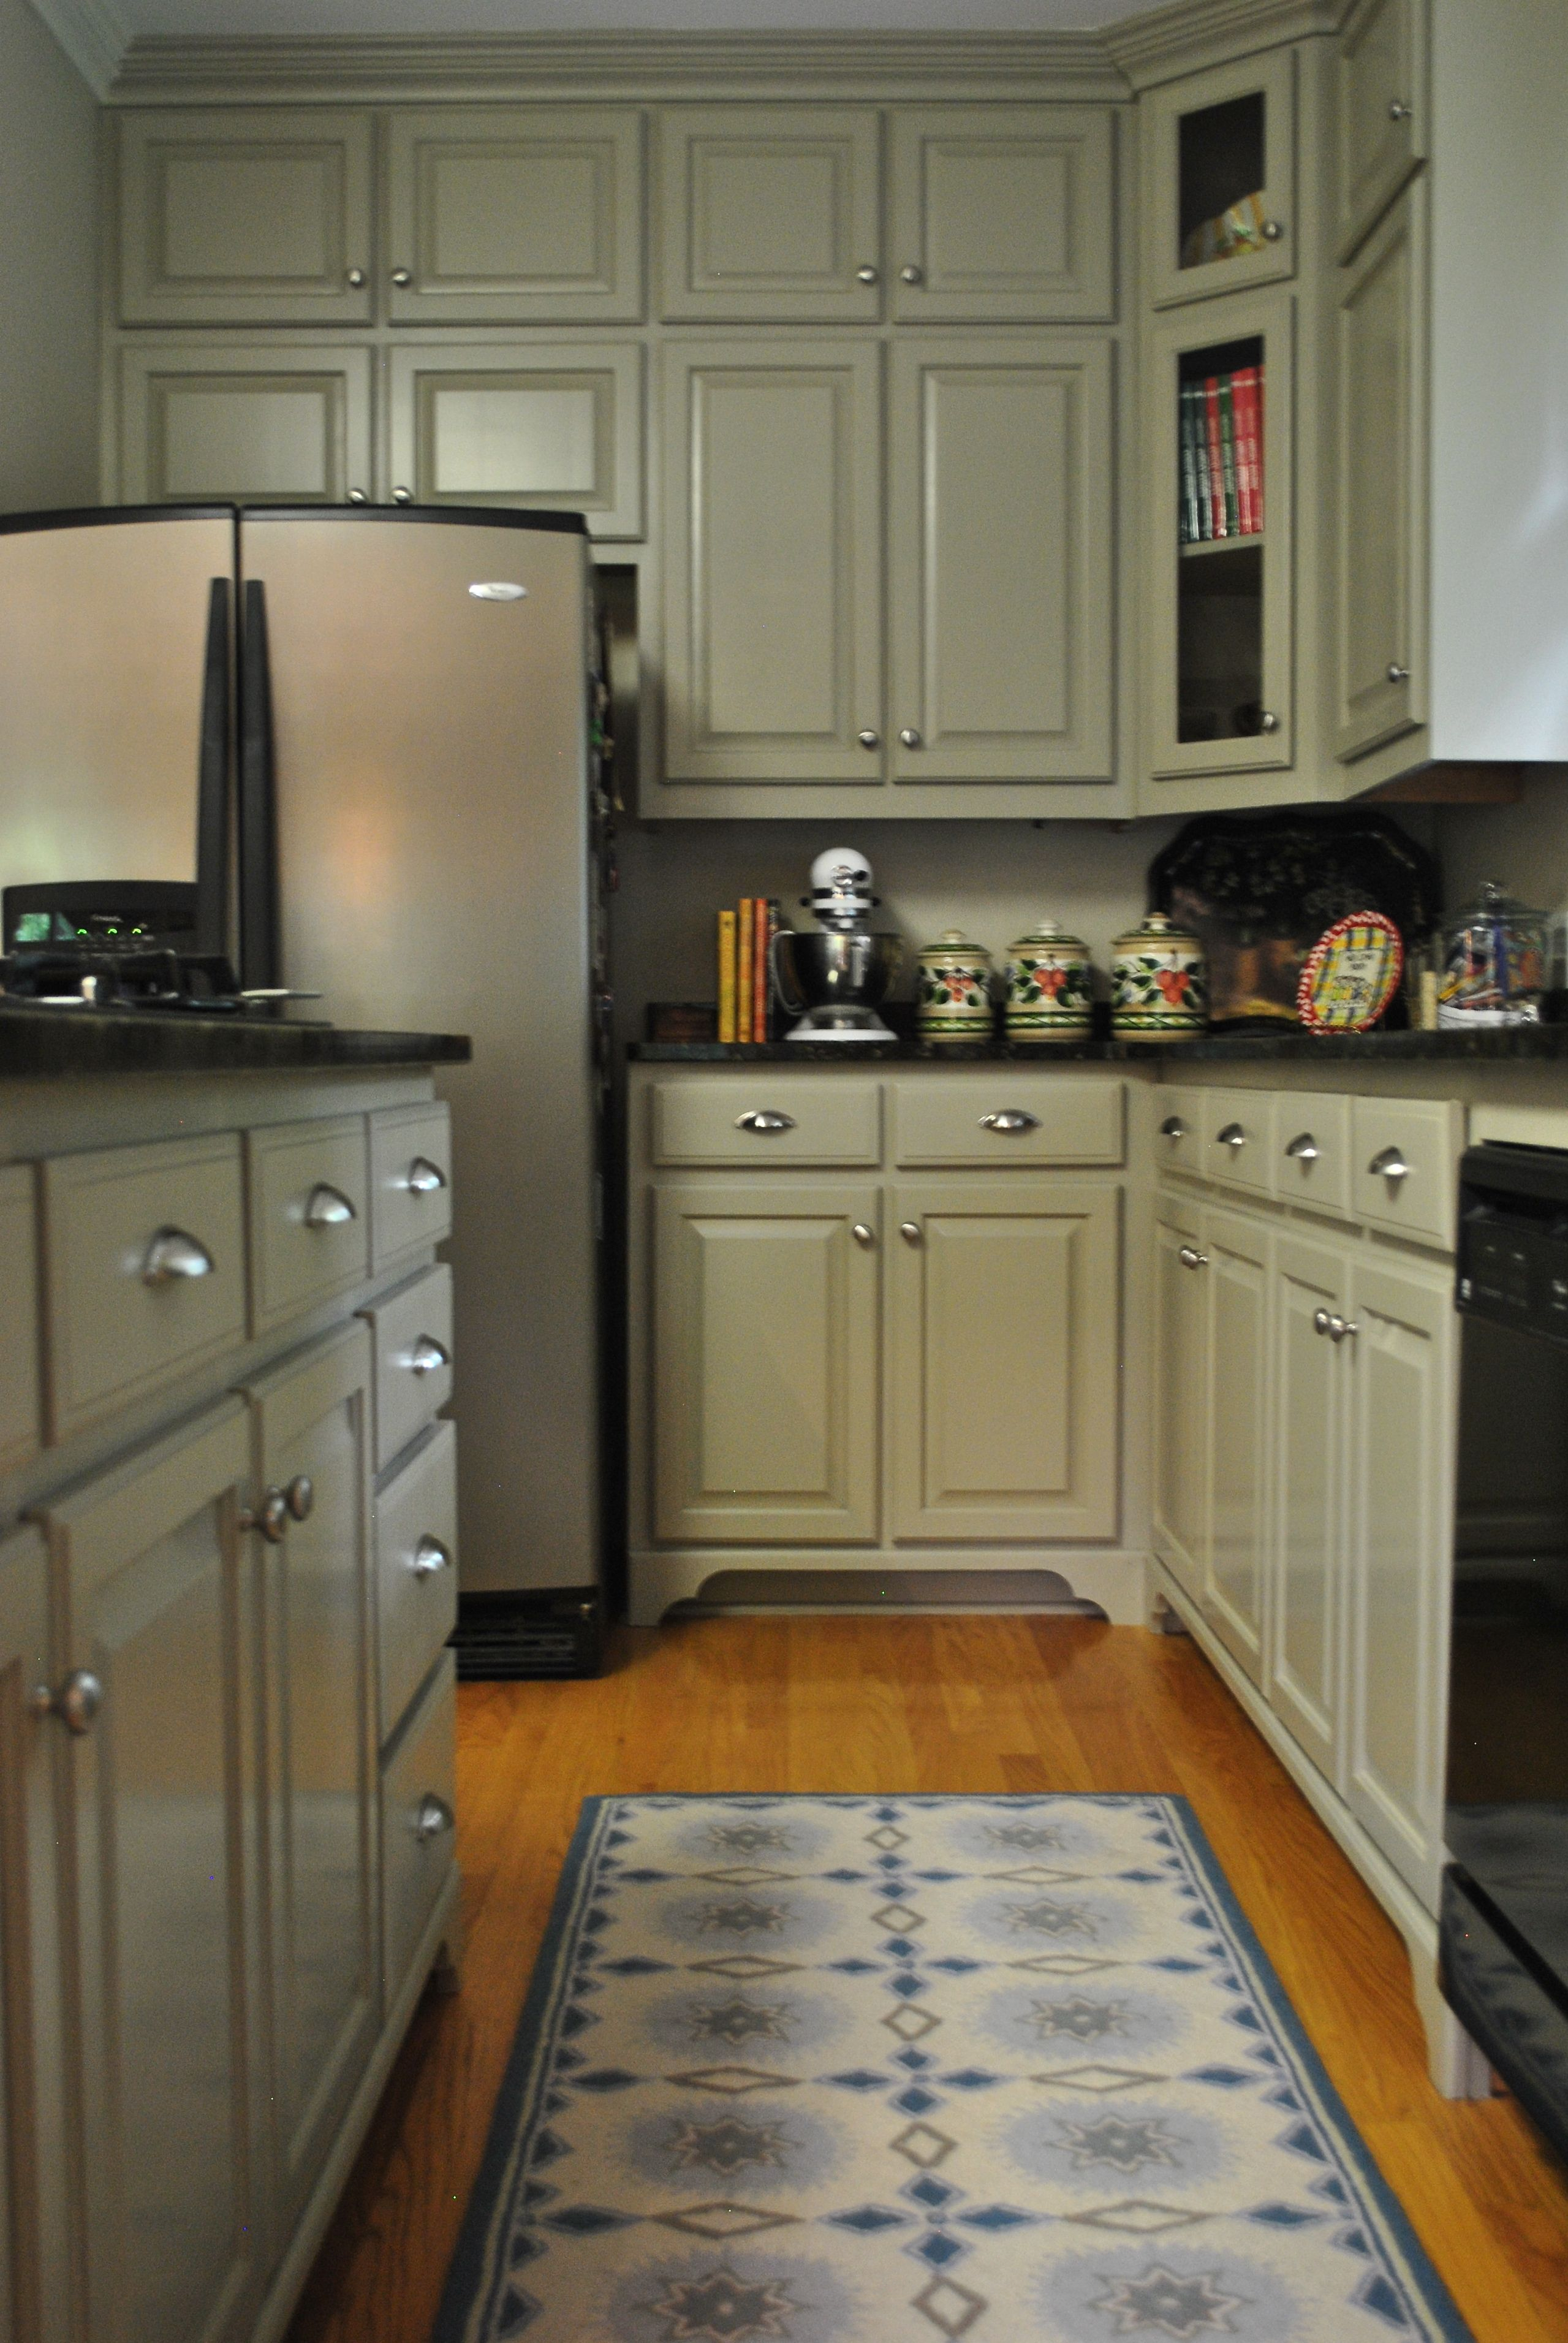 Pin By Lee Ann Burkhart On My Designs Grey Kitchen Cabinets Home Kitchens Kitchen Remodel